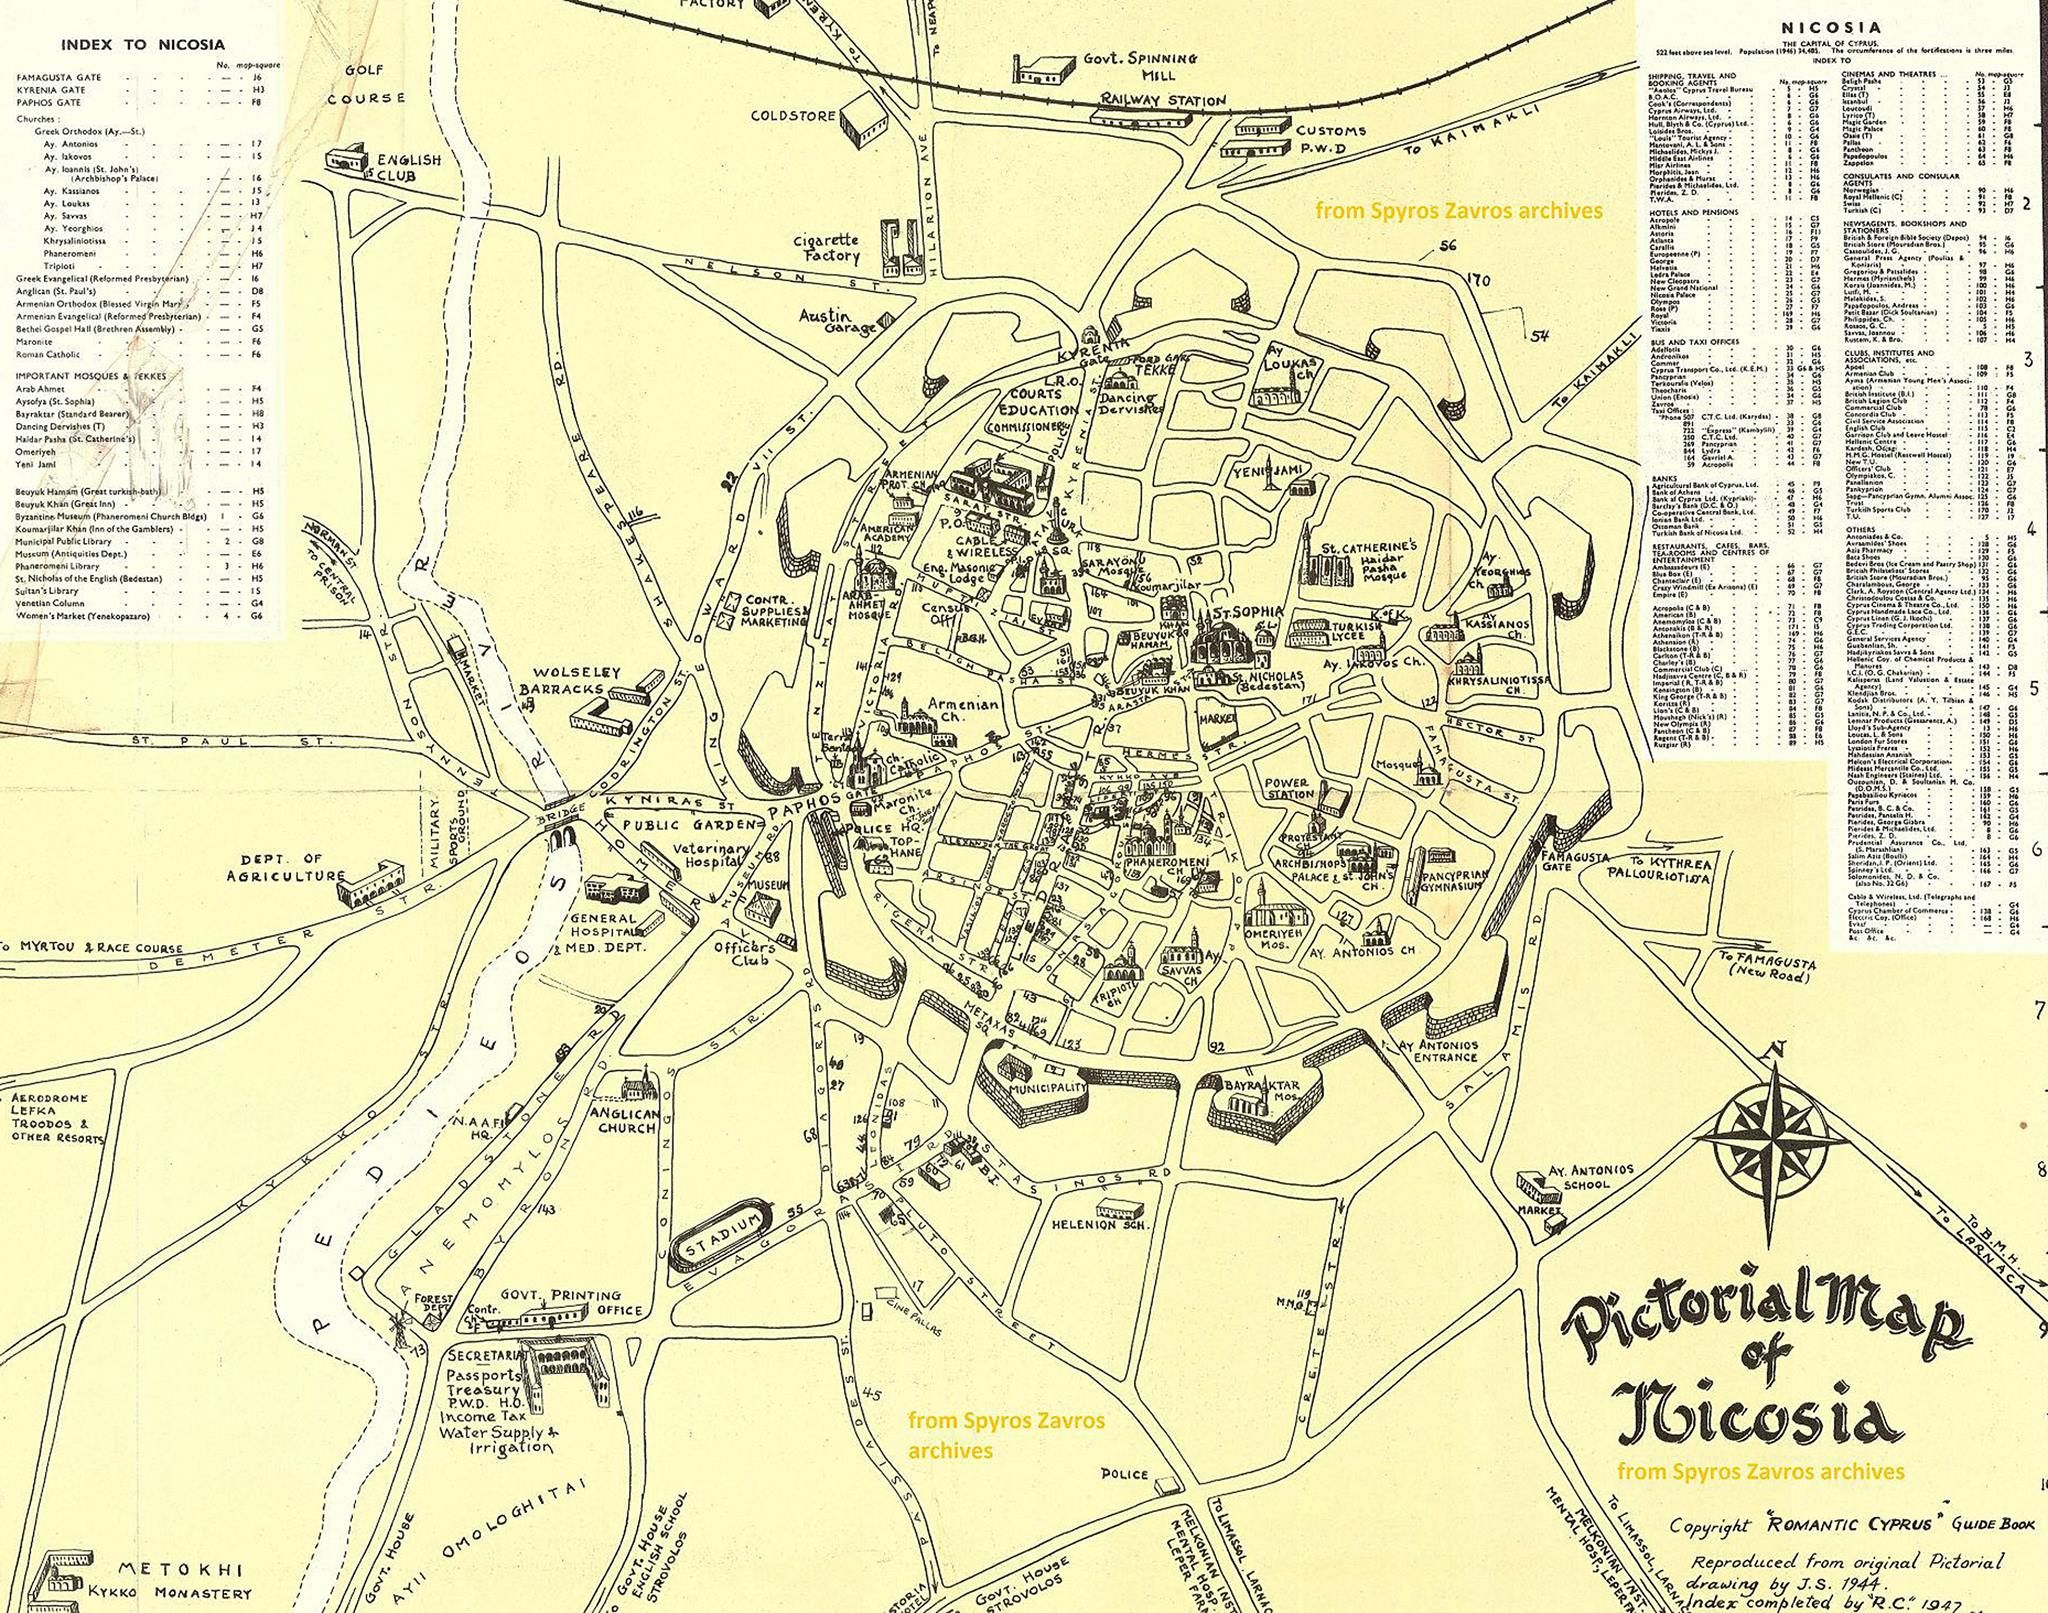 Pictorial Map of Nicosia 1940s From Spyros Zavros archives